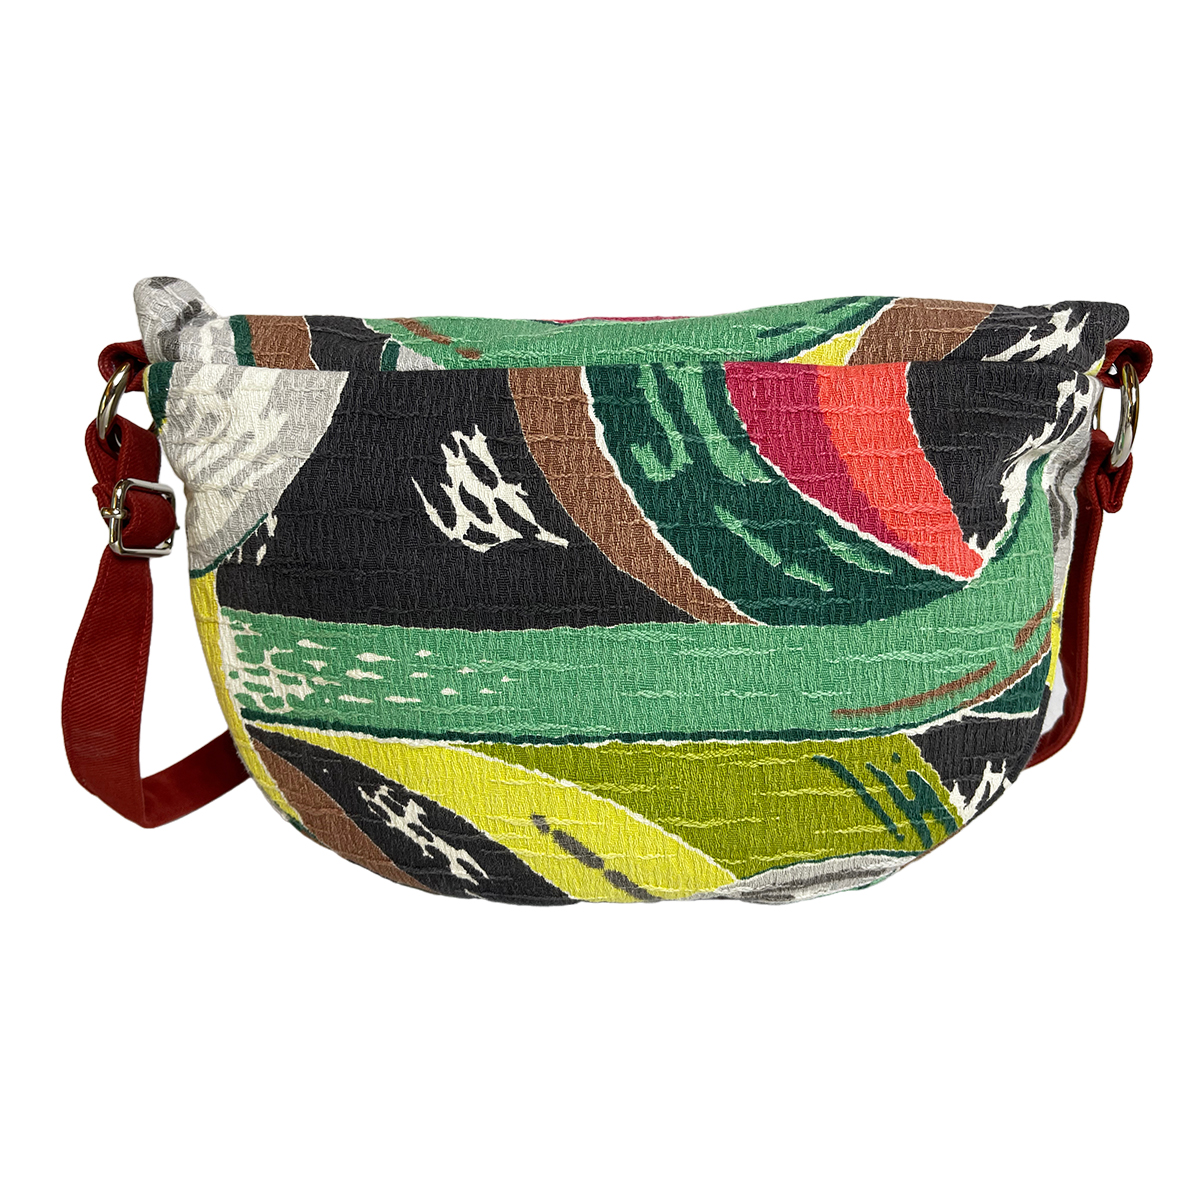 Vogue Bag – Abstract Watermelon